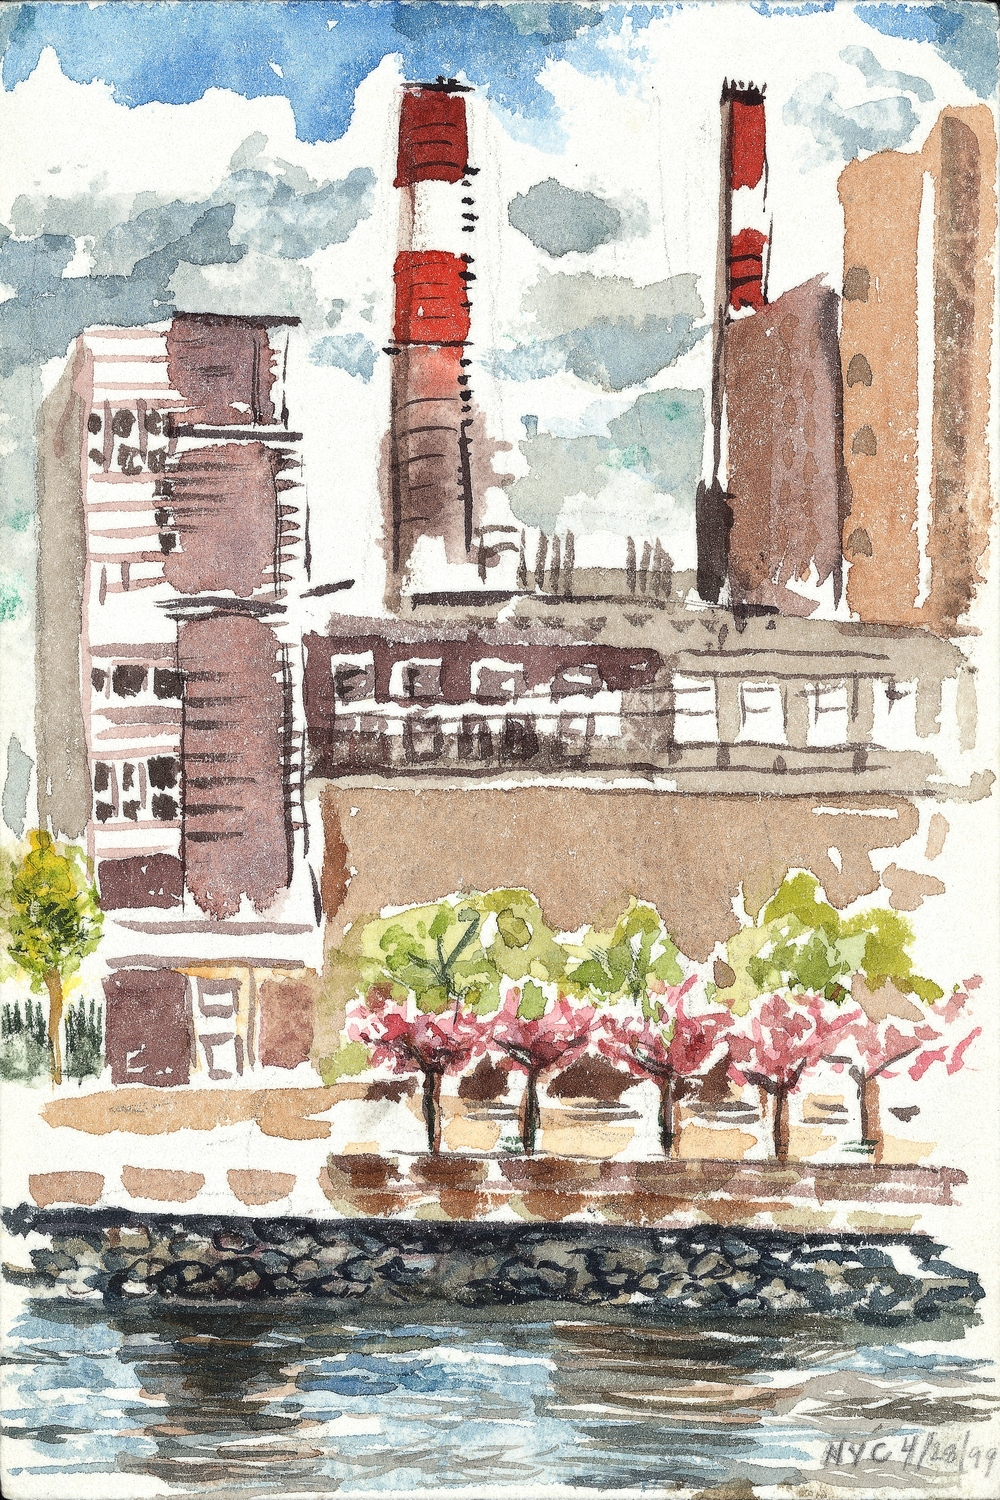 EAST RIVER, WATERCOLOR